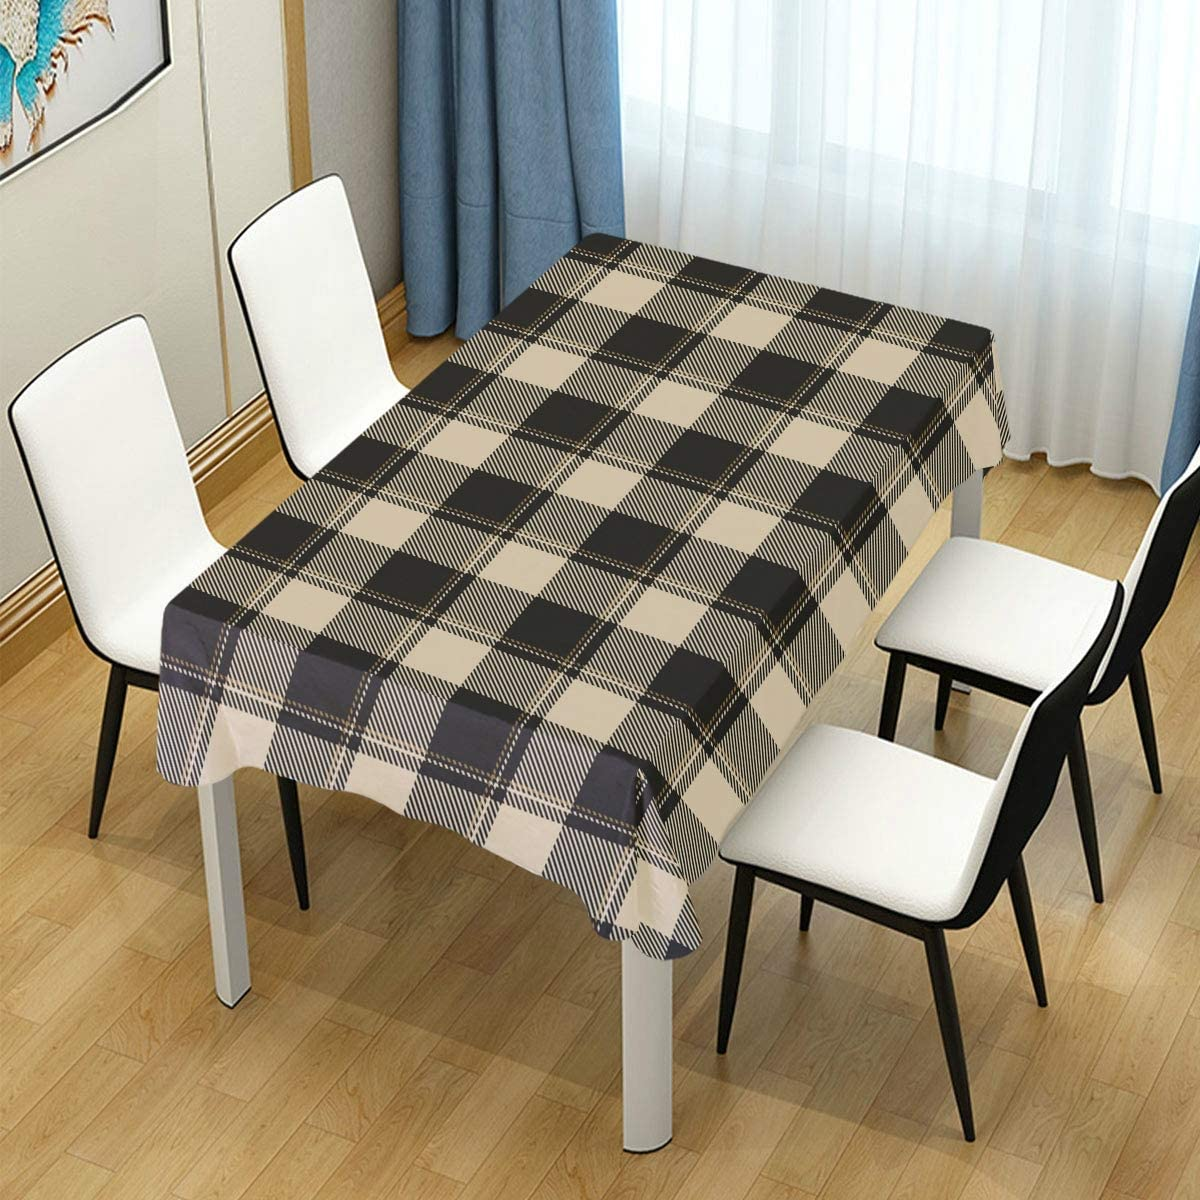 ALAZA Buffalo Check Vichy Gingham Plaid Brown Table Cloth Rectangle 60 x 90 Inch Tablecloth Anti Wrinkle Table Cover for Dining Kitchen Parties